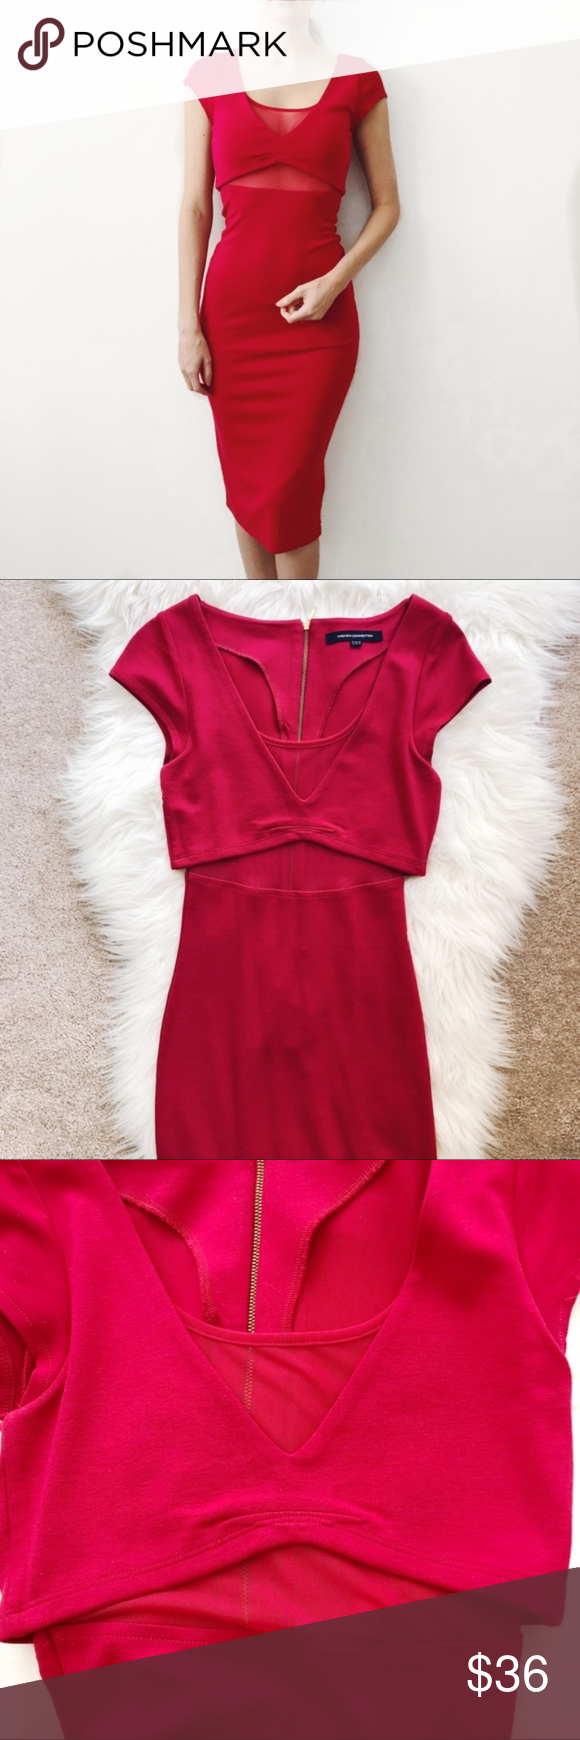 French Connection Hot PinkRed Dress Size   My Posh Picks